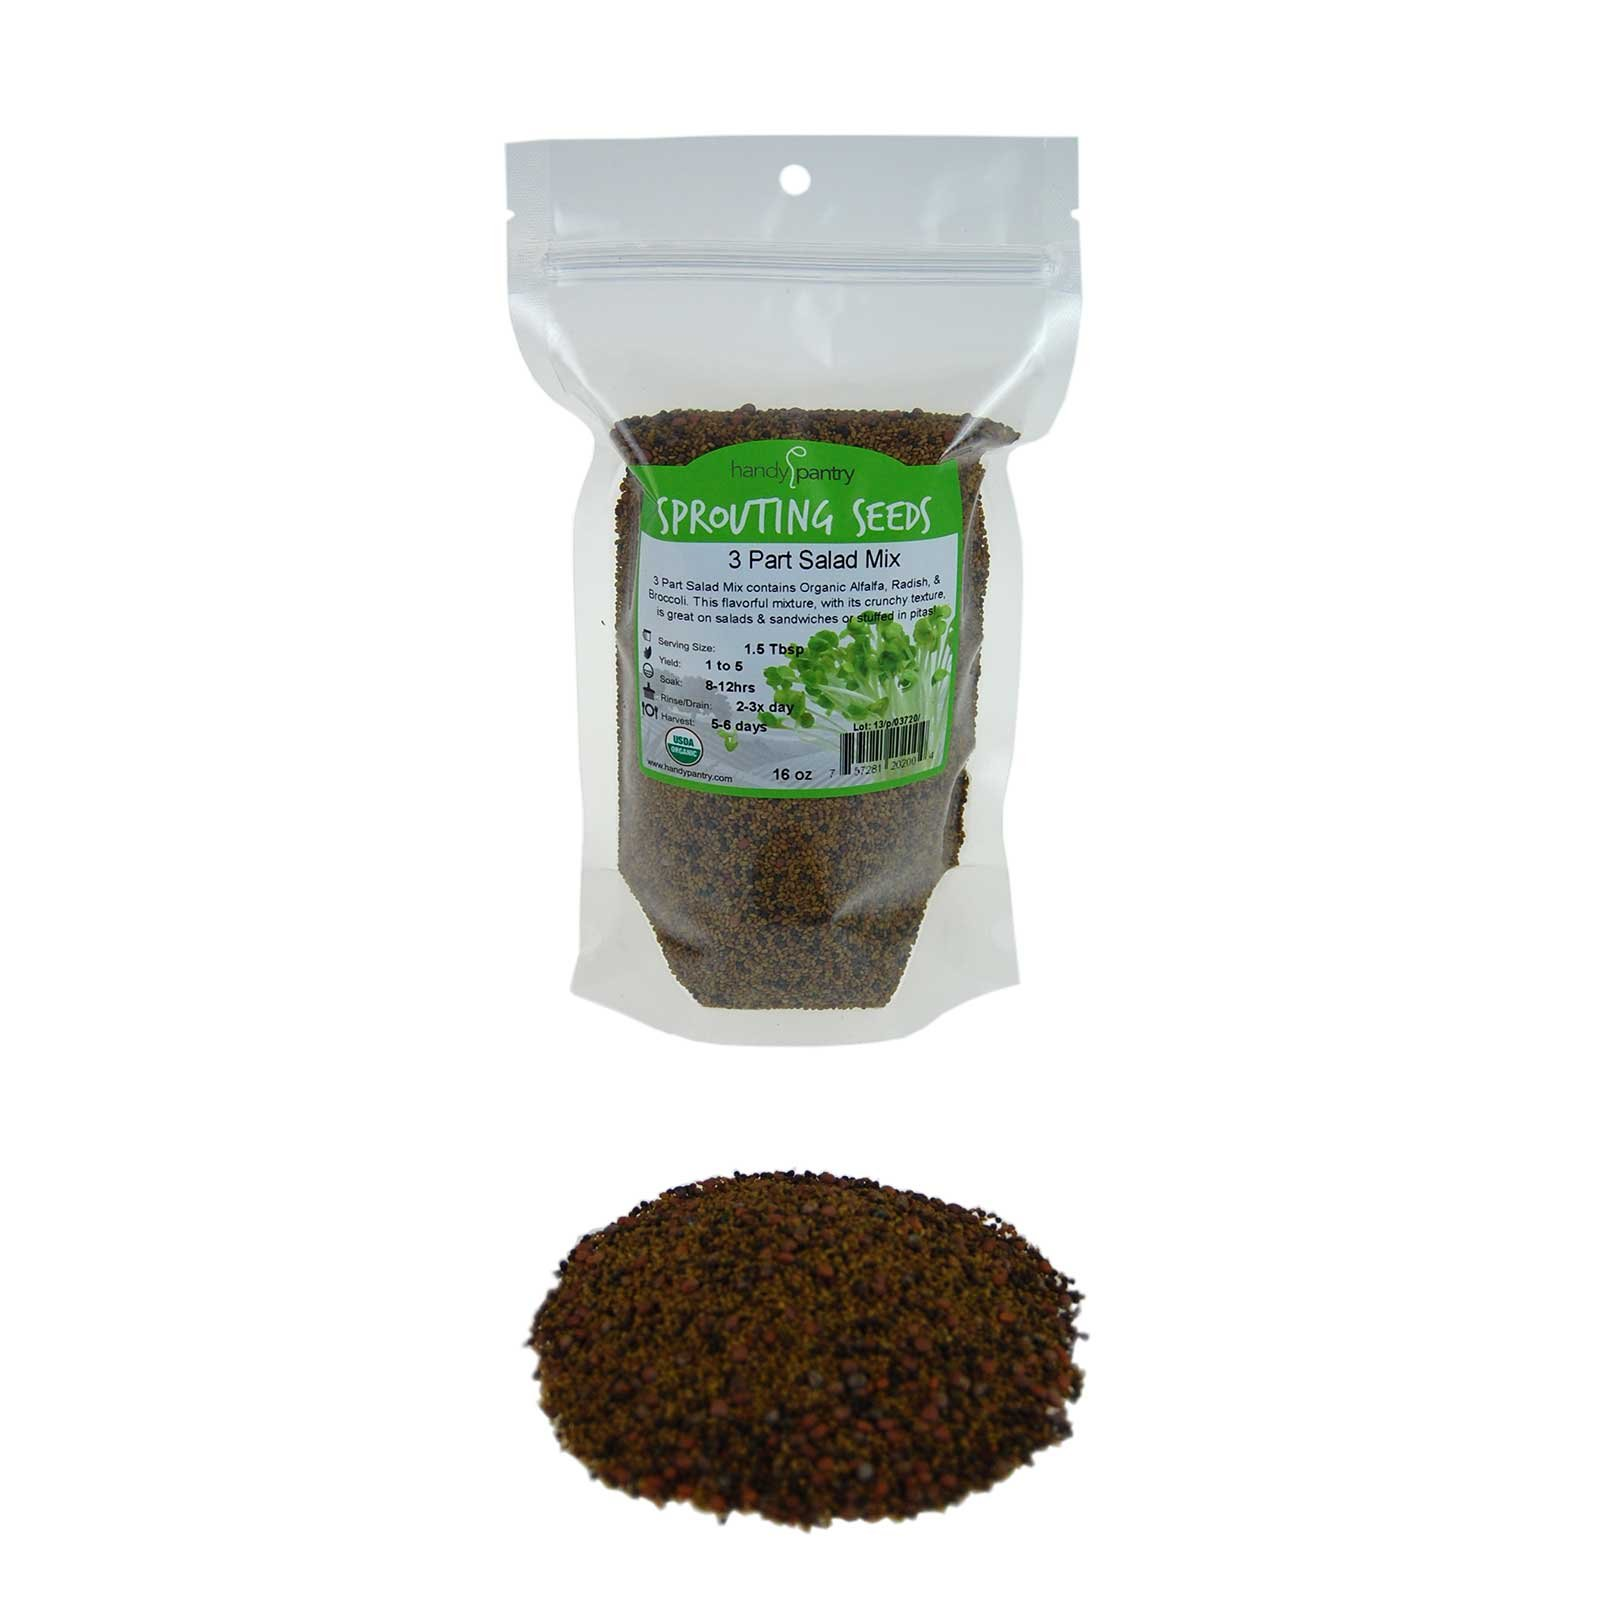 Handy Pantry 3 Part Salad Sprout Seed Mix - 1 Lbs Brand: Certified Organic Sprouting Seeds: Radish, Broccoli & Alfalfa: Cooking, Food Storage or Delicious Salad Sprouts